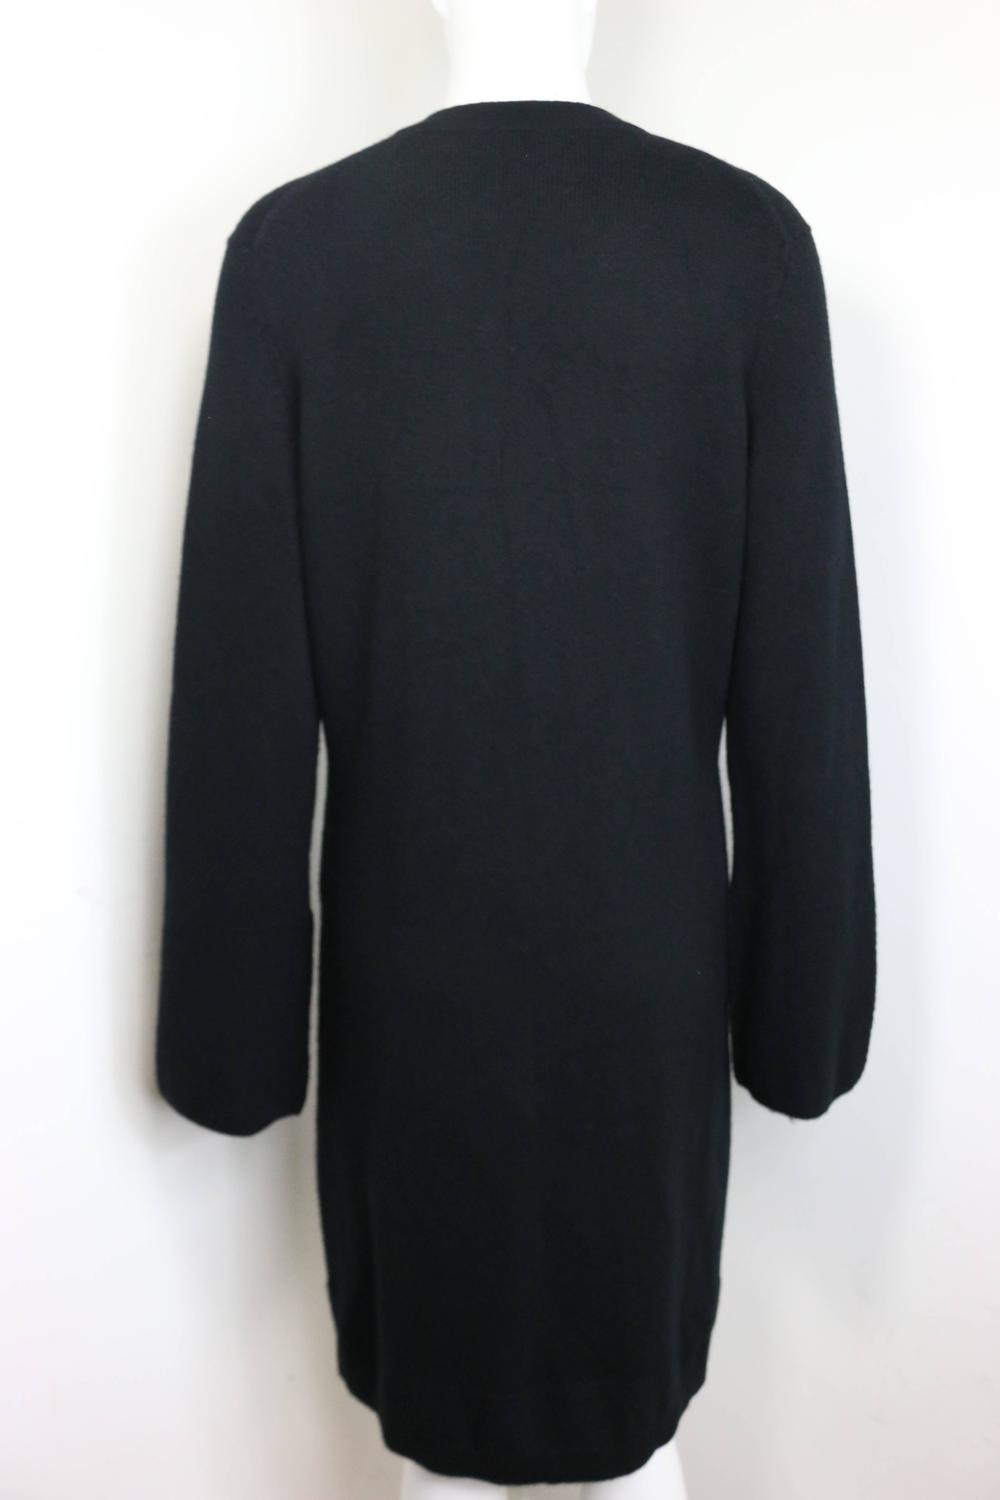 Black Cardigan With Diamond Buttons 86